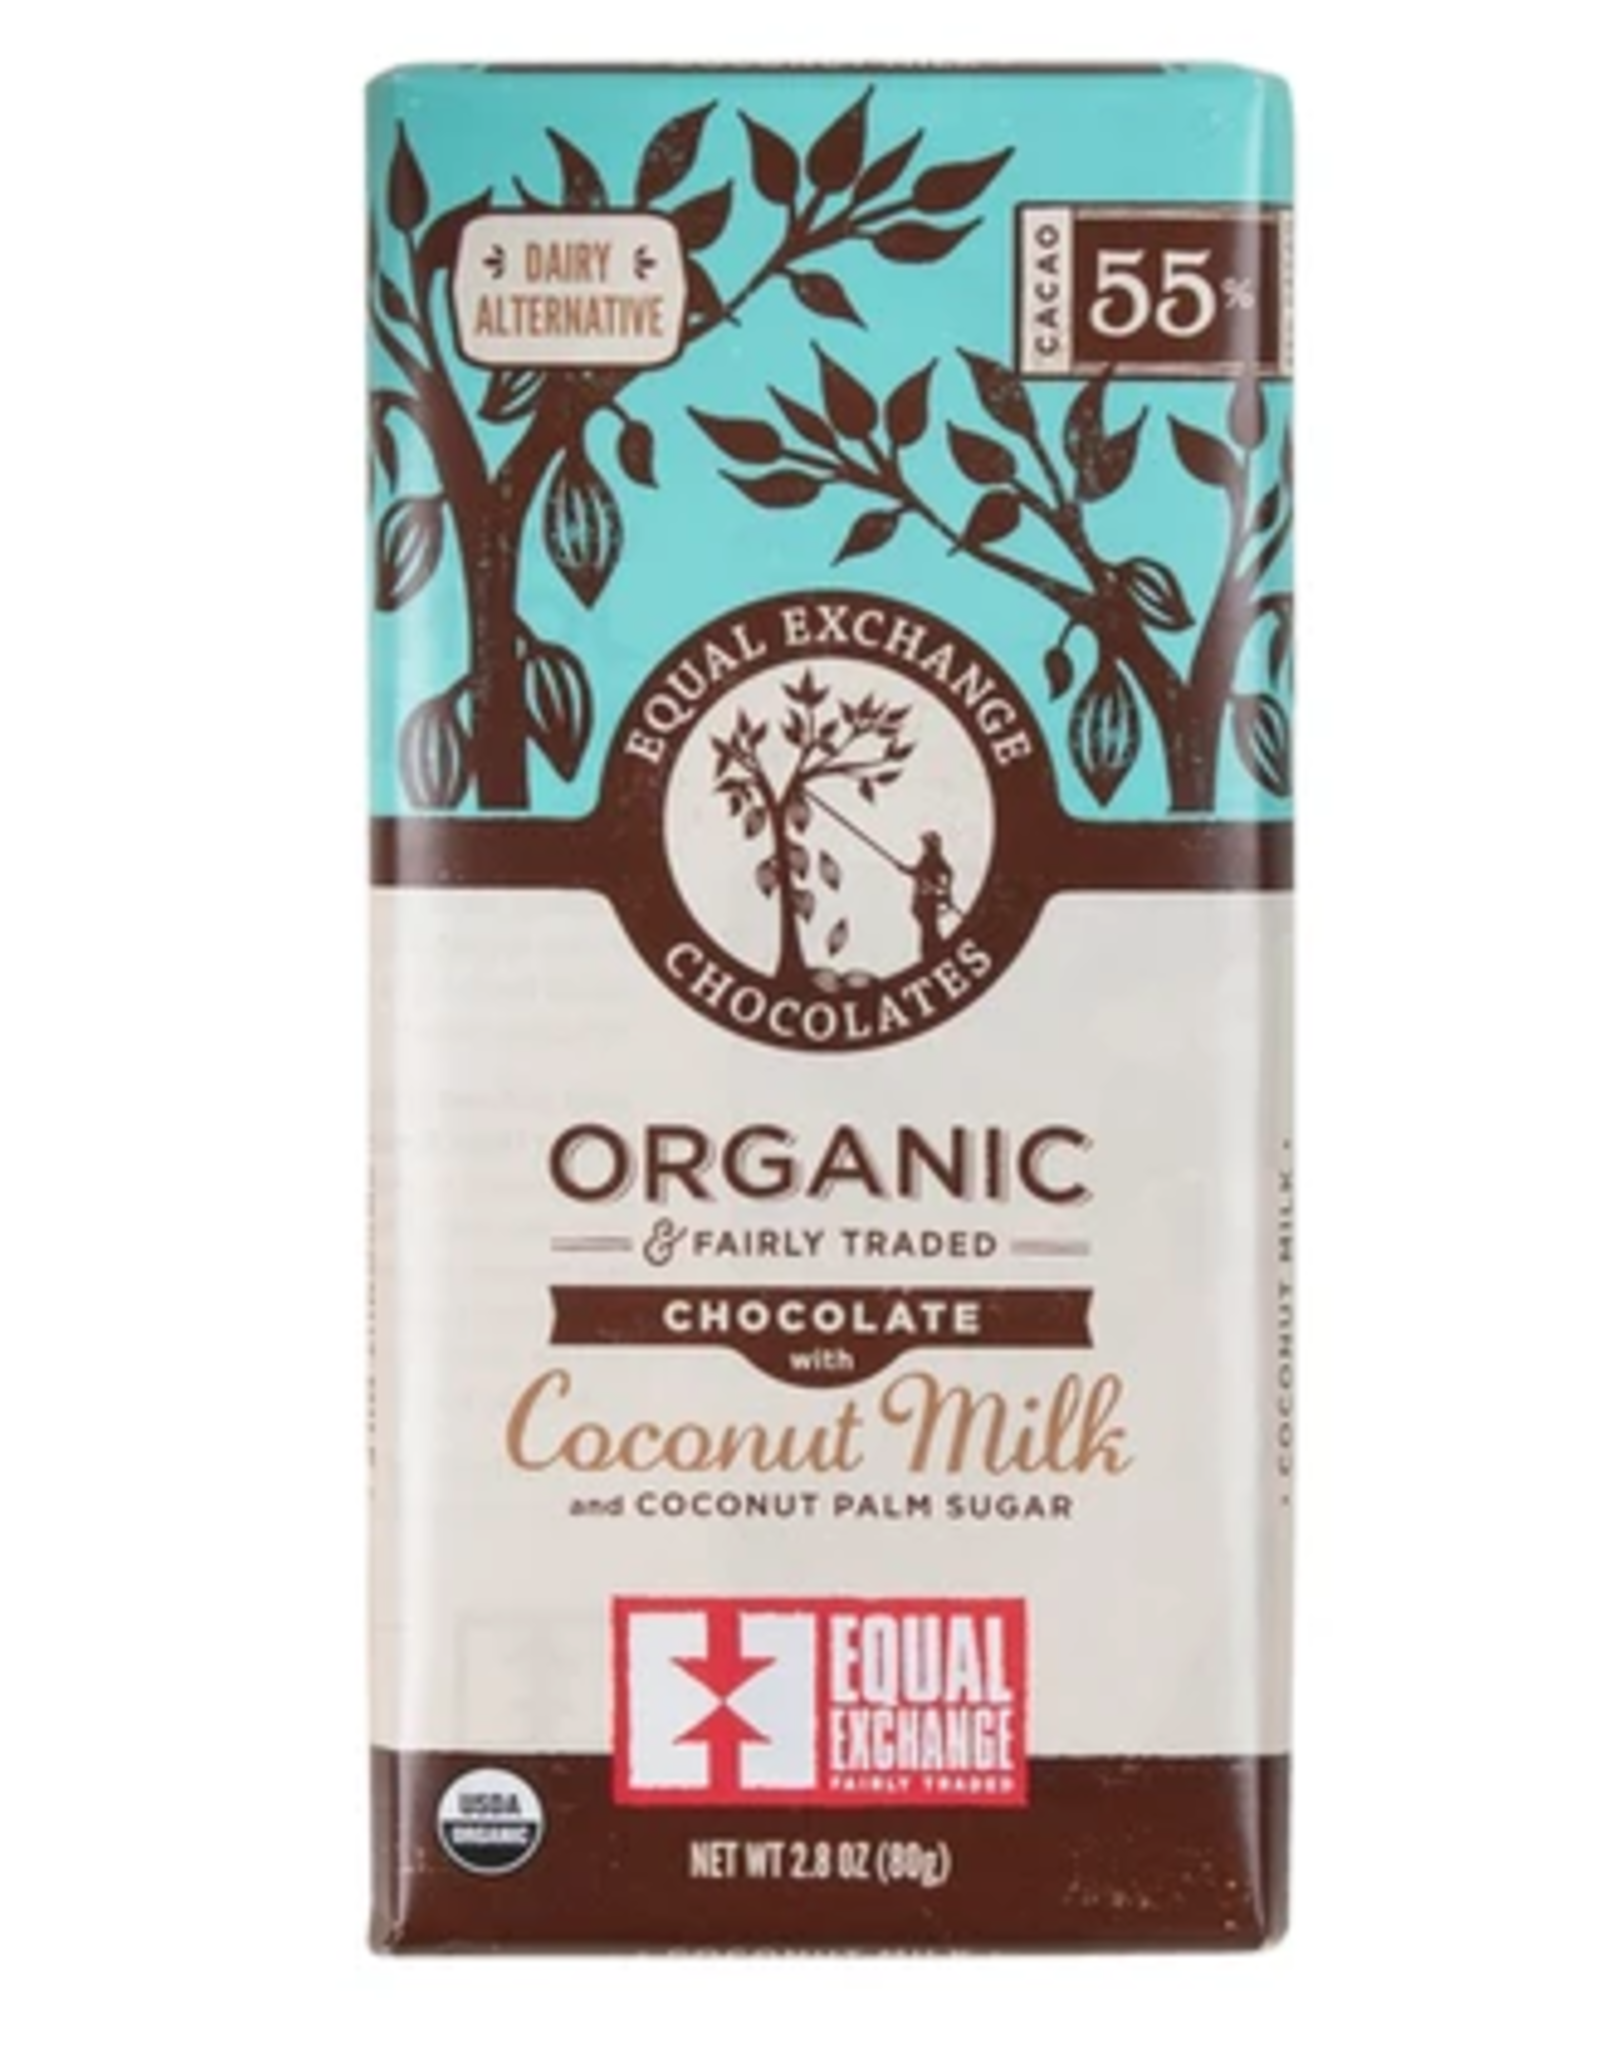 Organic Chocolate with Coconut Milk 55%